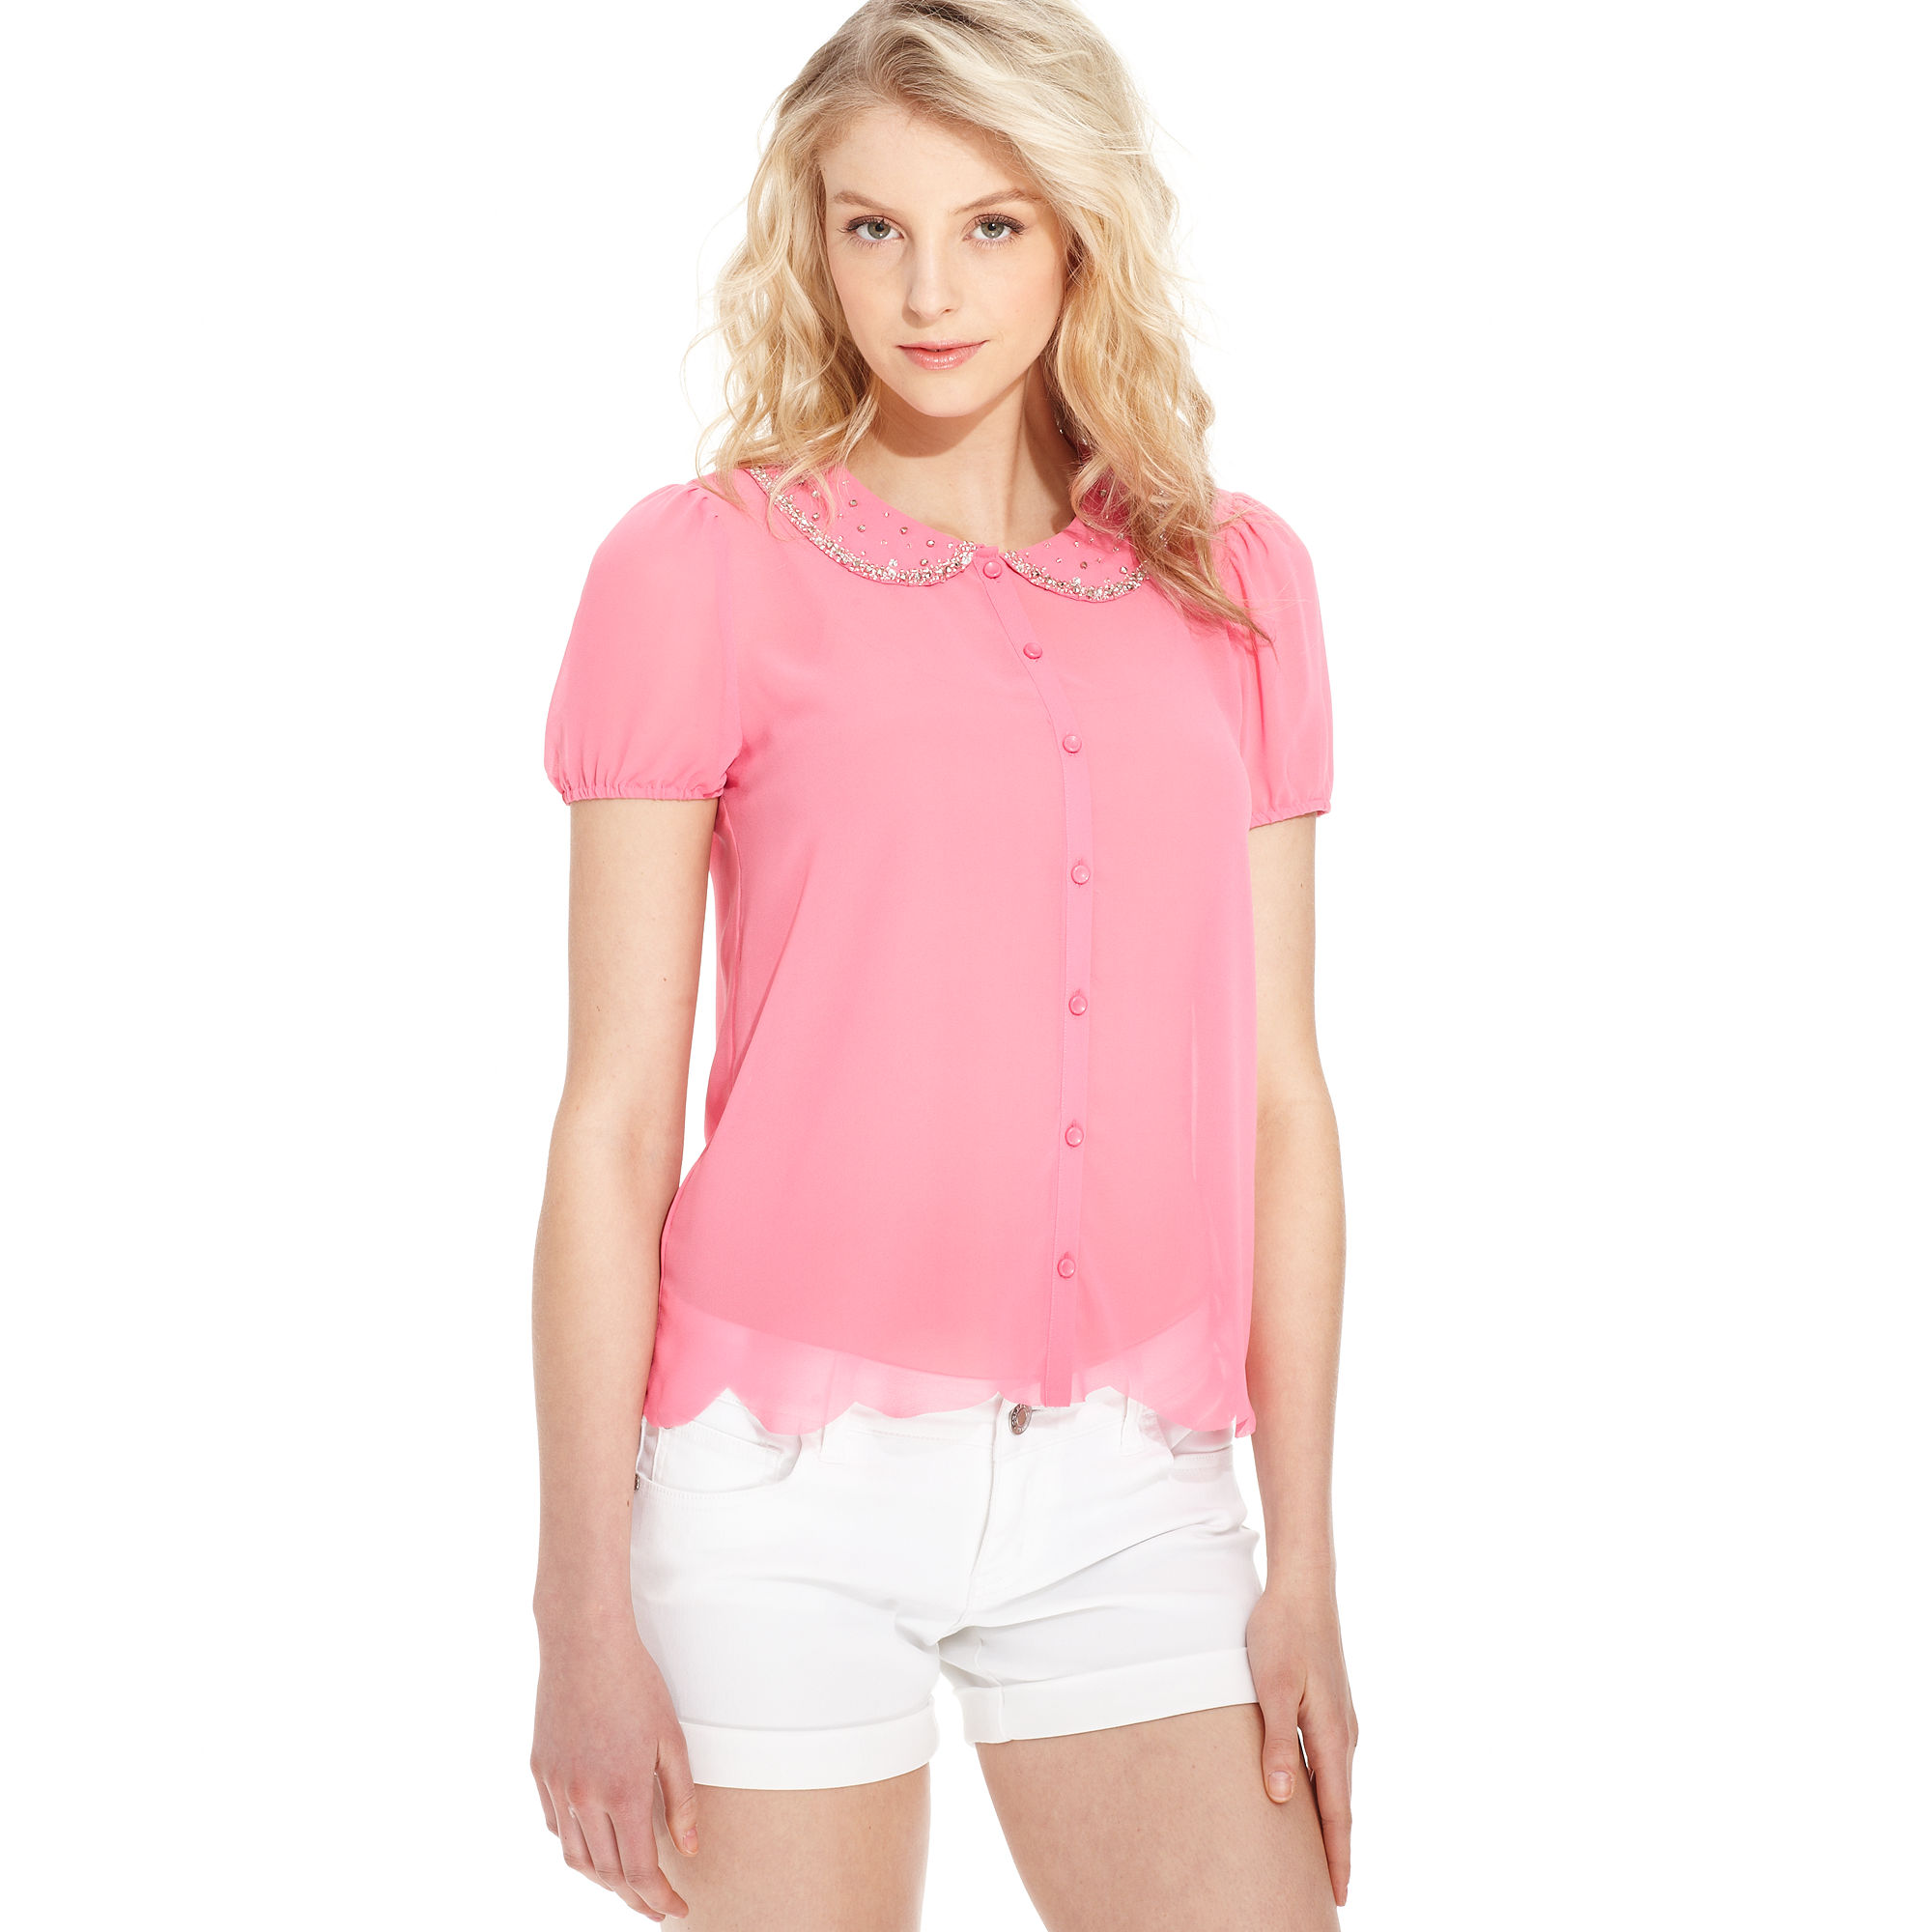 Women'S Short Sleeve Chiffon Blouse 15